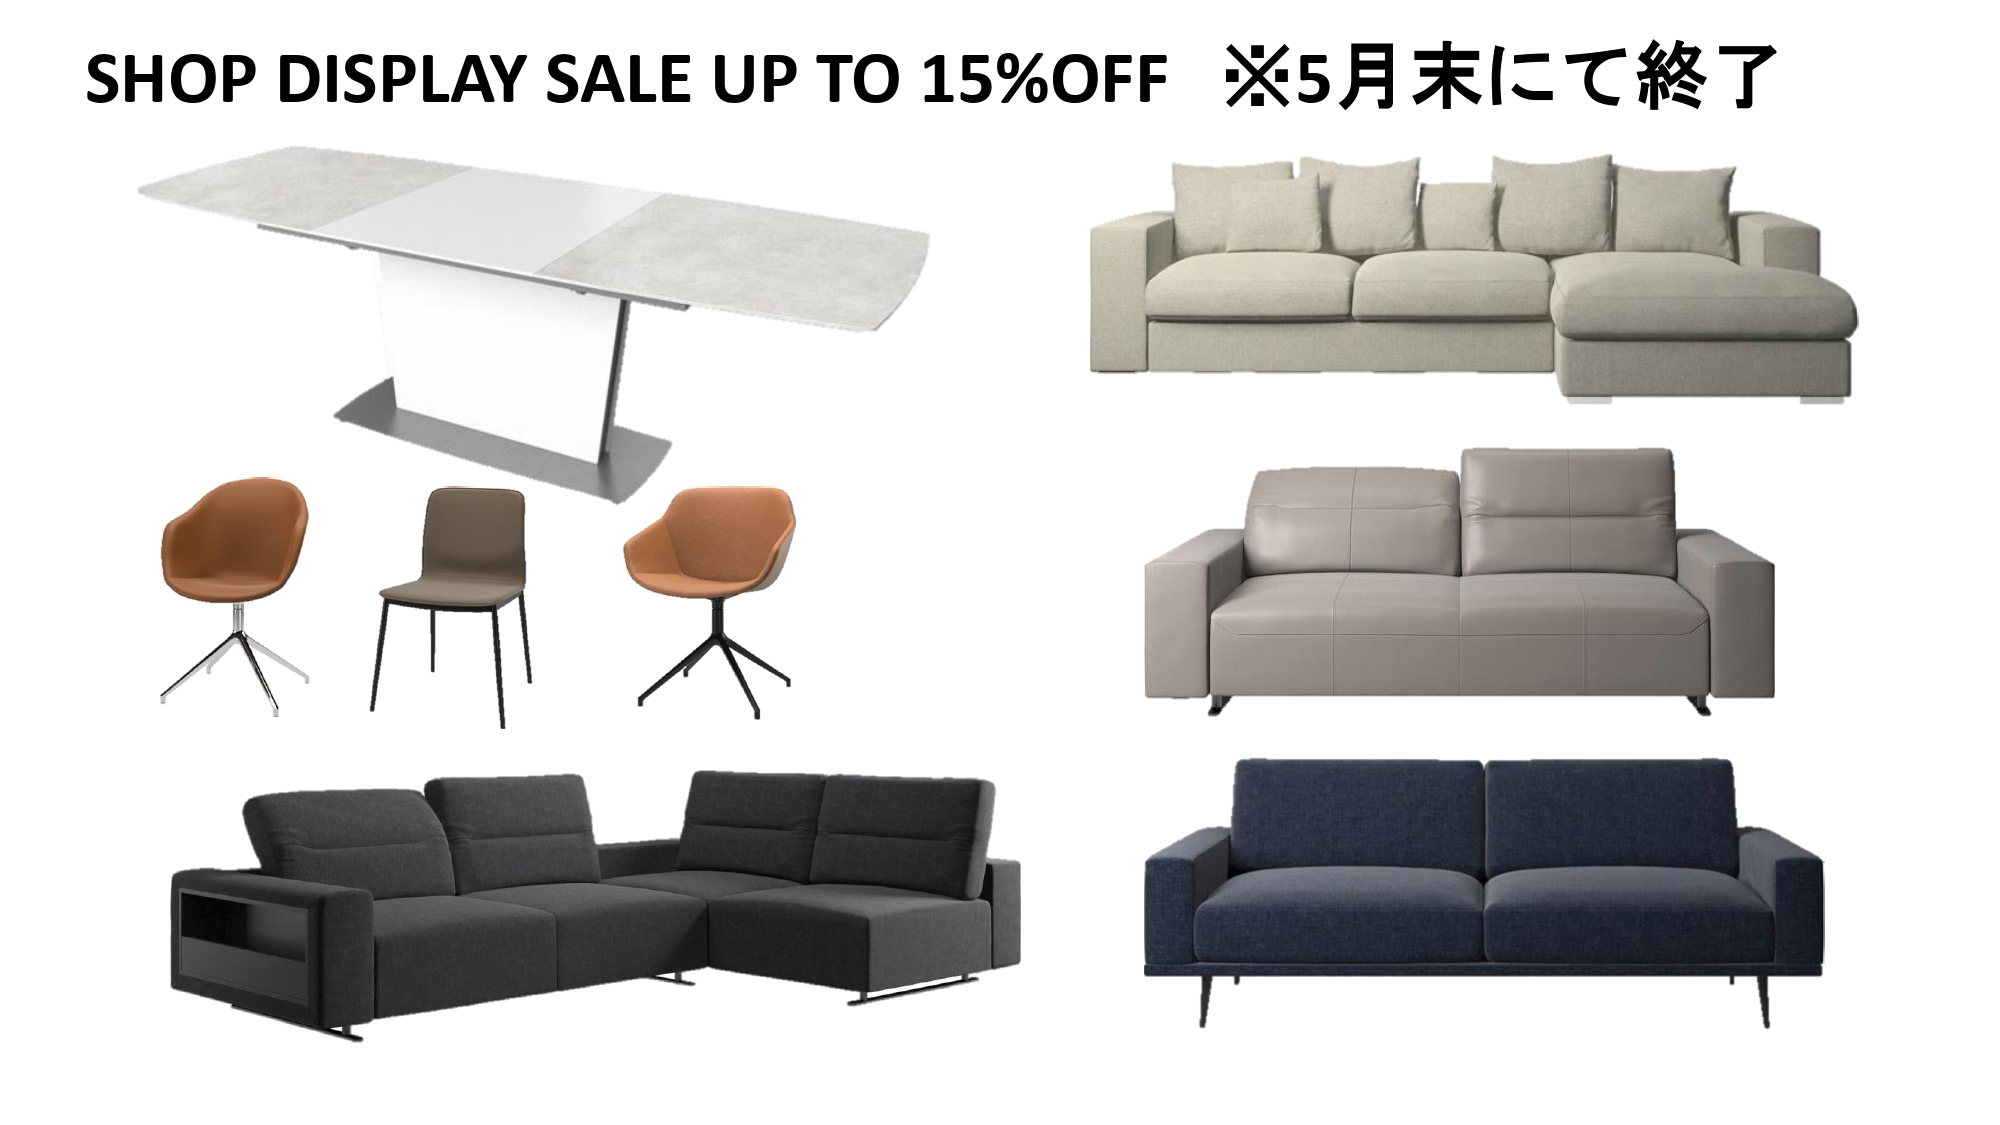 ShopDisplay Sale 最大15%OFF